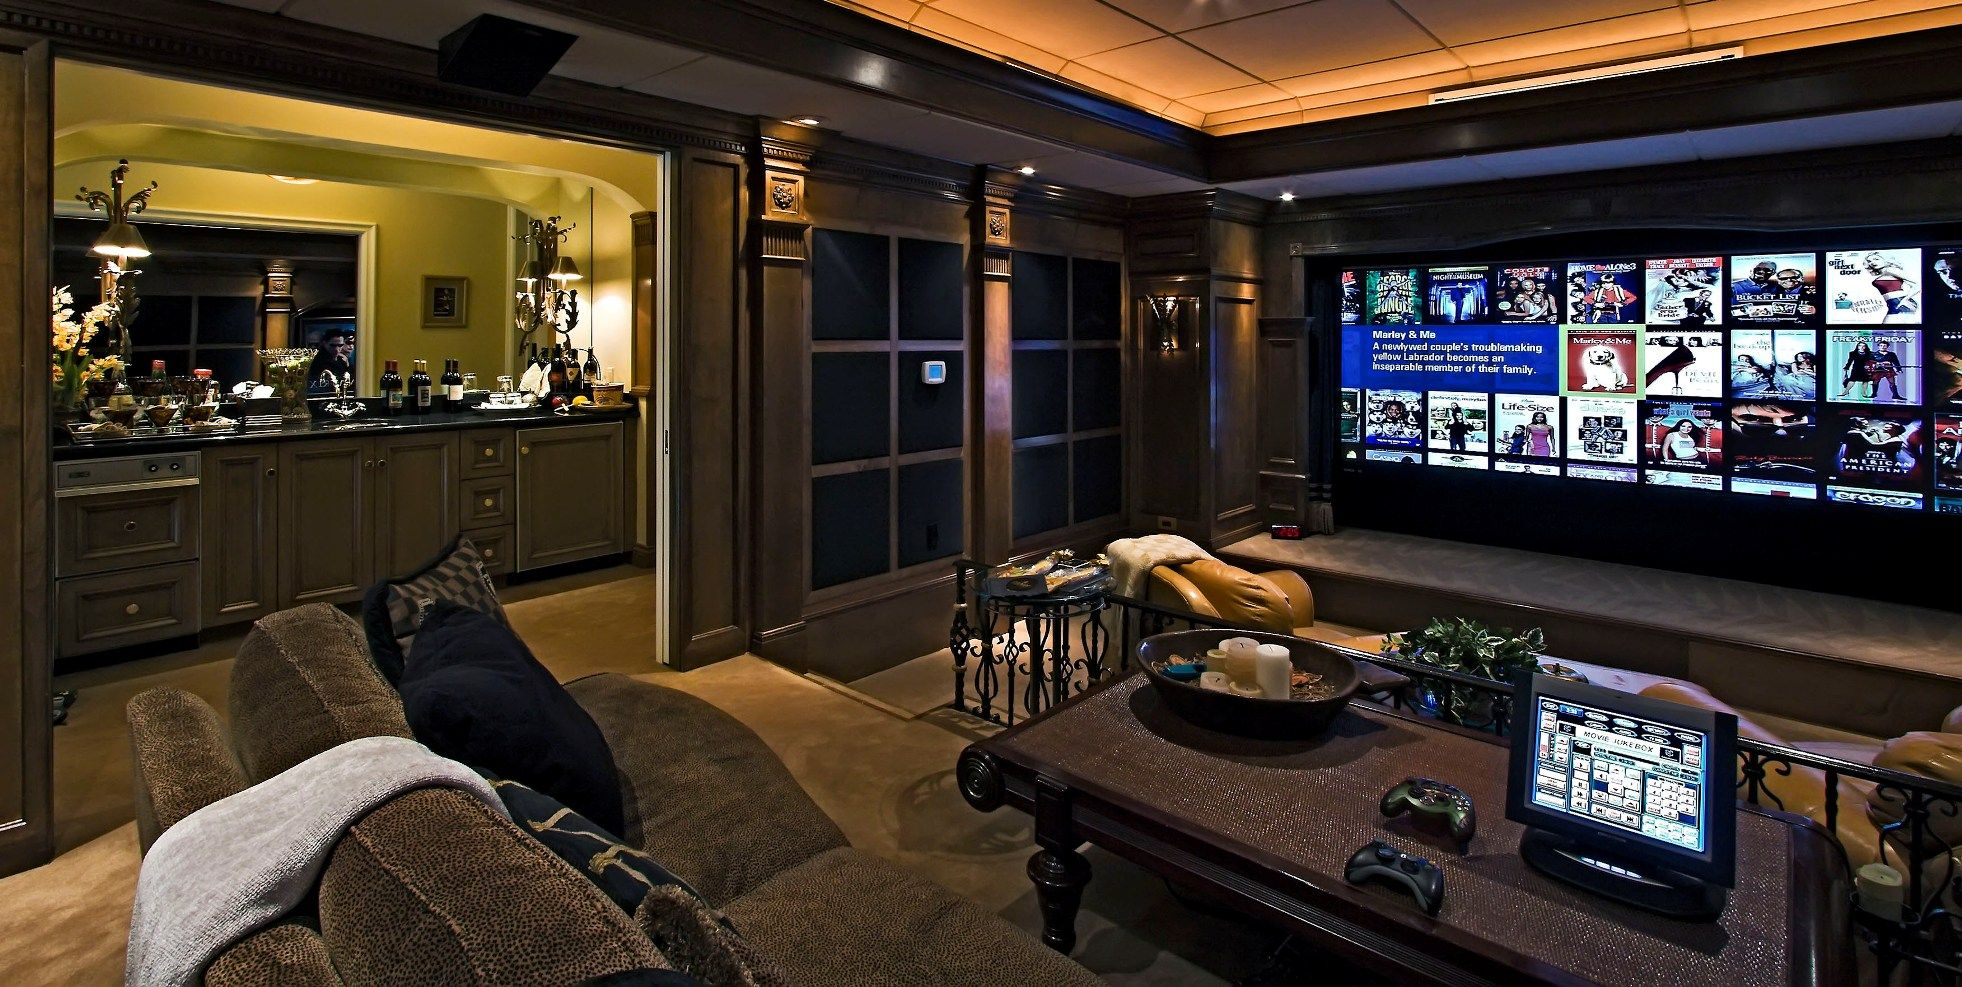 best images about home theater rooms theater rooms design home theatre room design - Home Theater Rooms Design Ideas